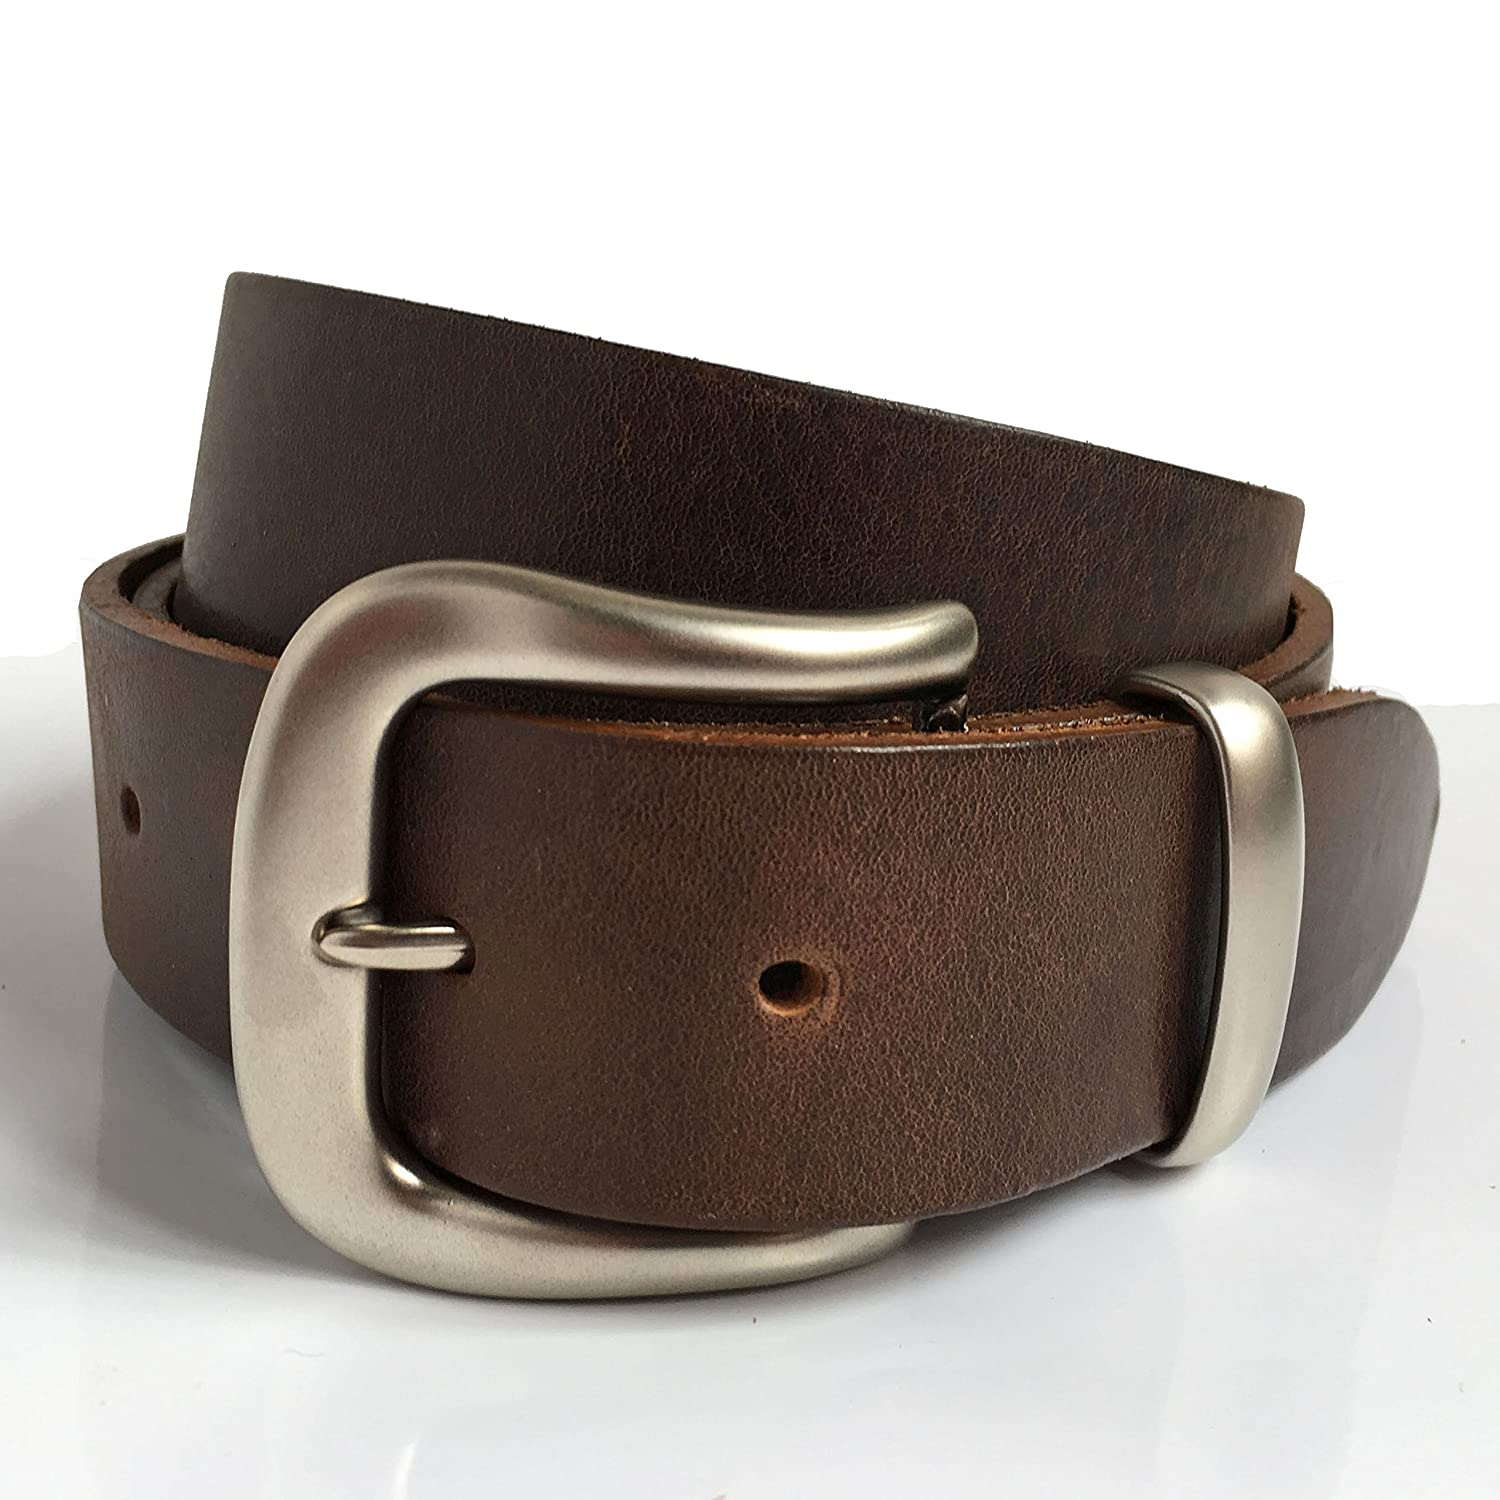 Classical Brown Leather Belt for Men Handmade in UK 1' 1/2 ca. 4cm with Silver Pin Buckle and Silver Loop with Extra Leather Loop Leather Strap also in Black, Tan, Vintage Brown or Navy